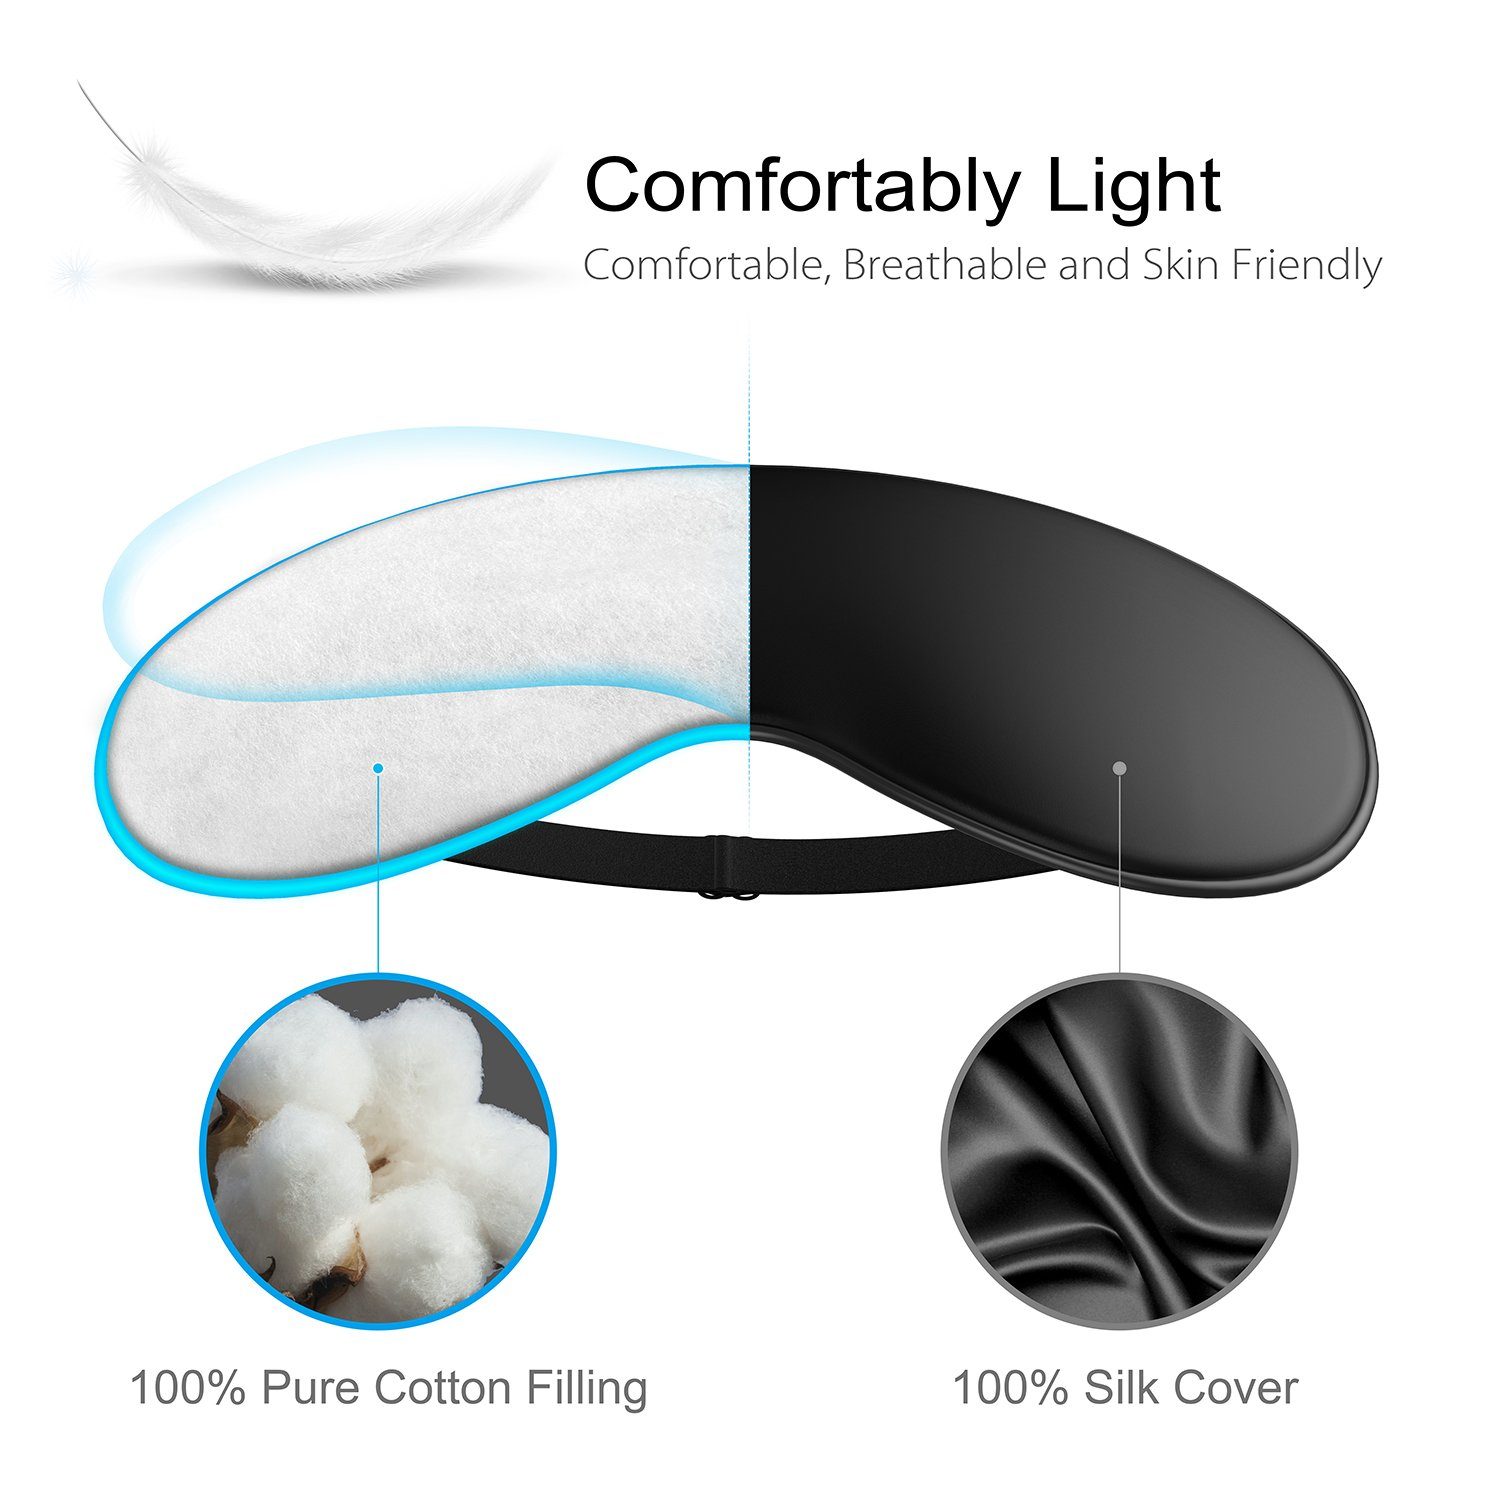 fae8b9b0 Sleep Mask, 2-Pack Eye Mask, TechRise Skin-Friendly Pure Natural Silk  Fabric and Pure Cotton Filled Sleeping Mask with Ear Plug and Adjustable  Comfortable ...